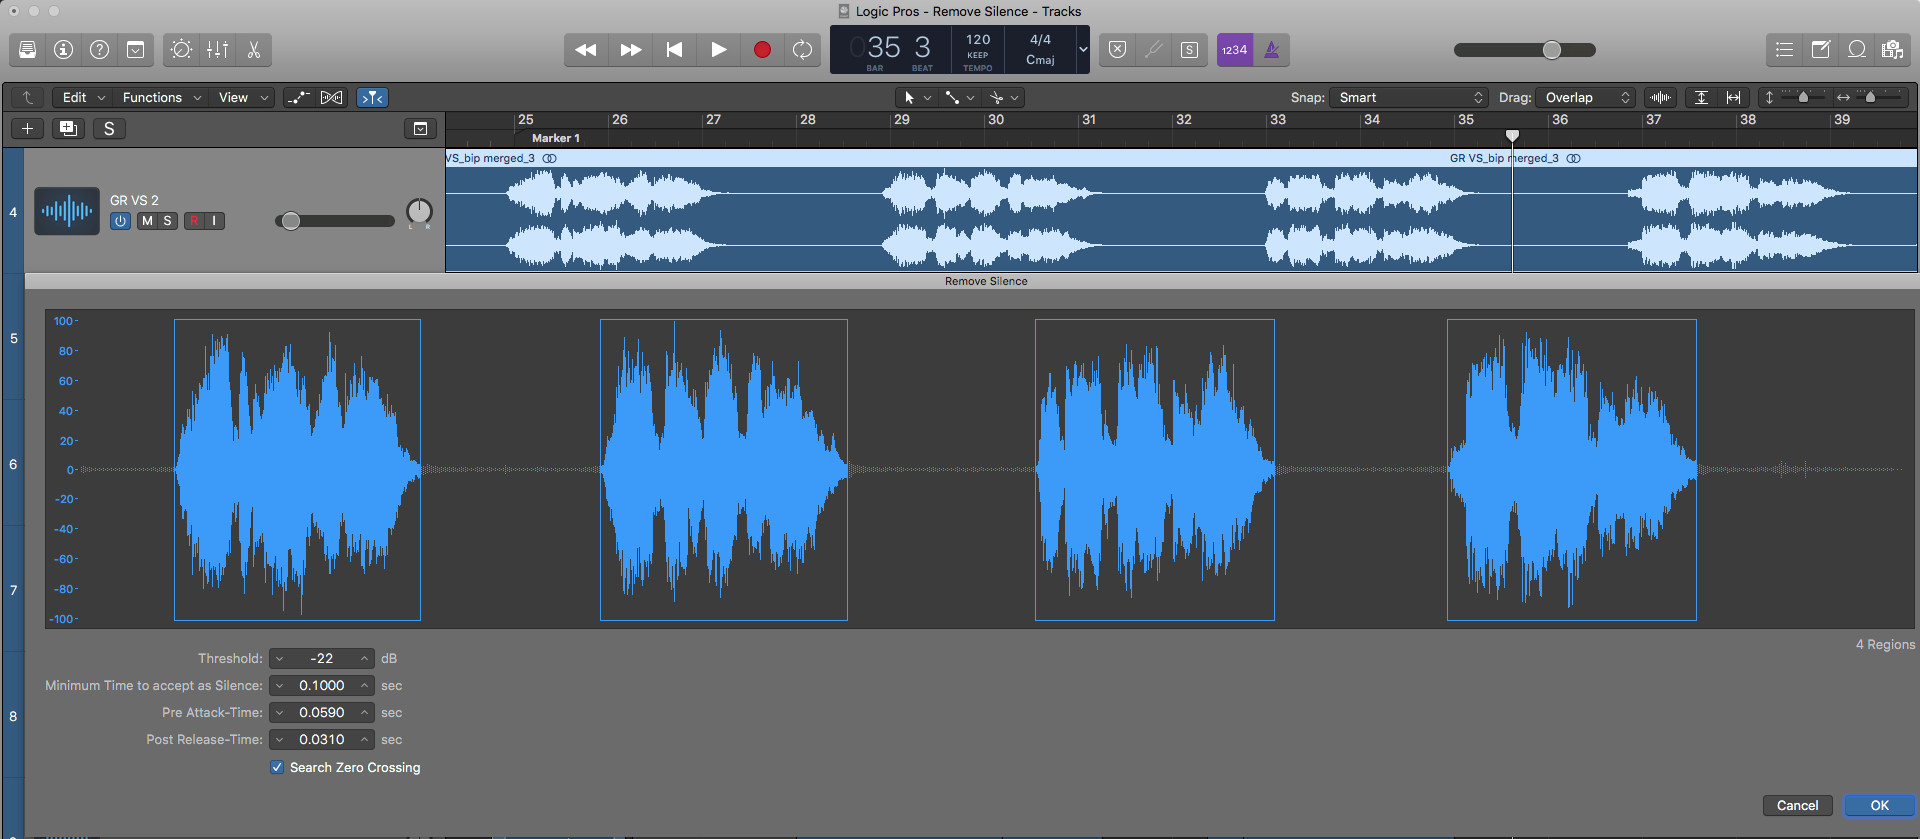 How to access Remove Silence in Logic